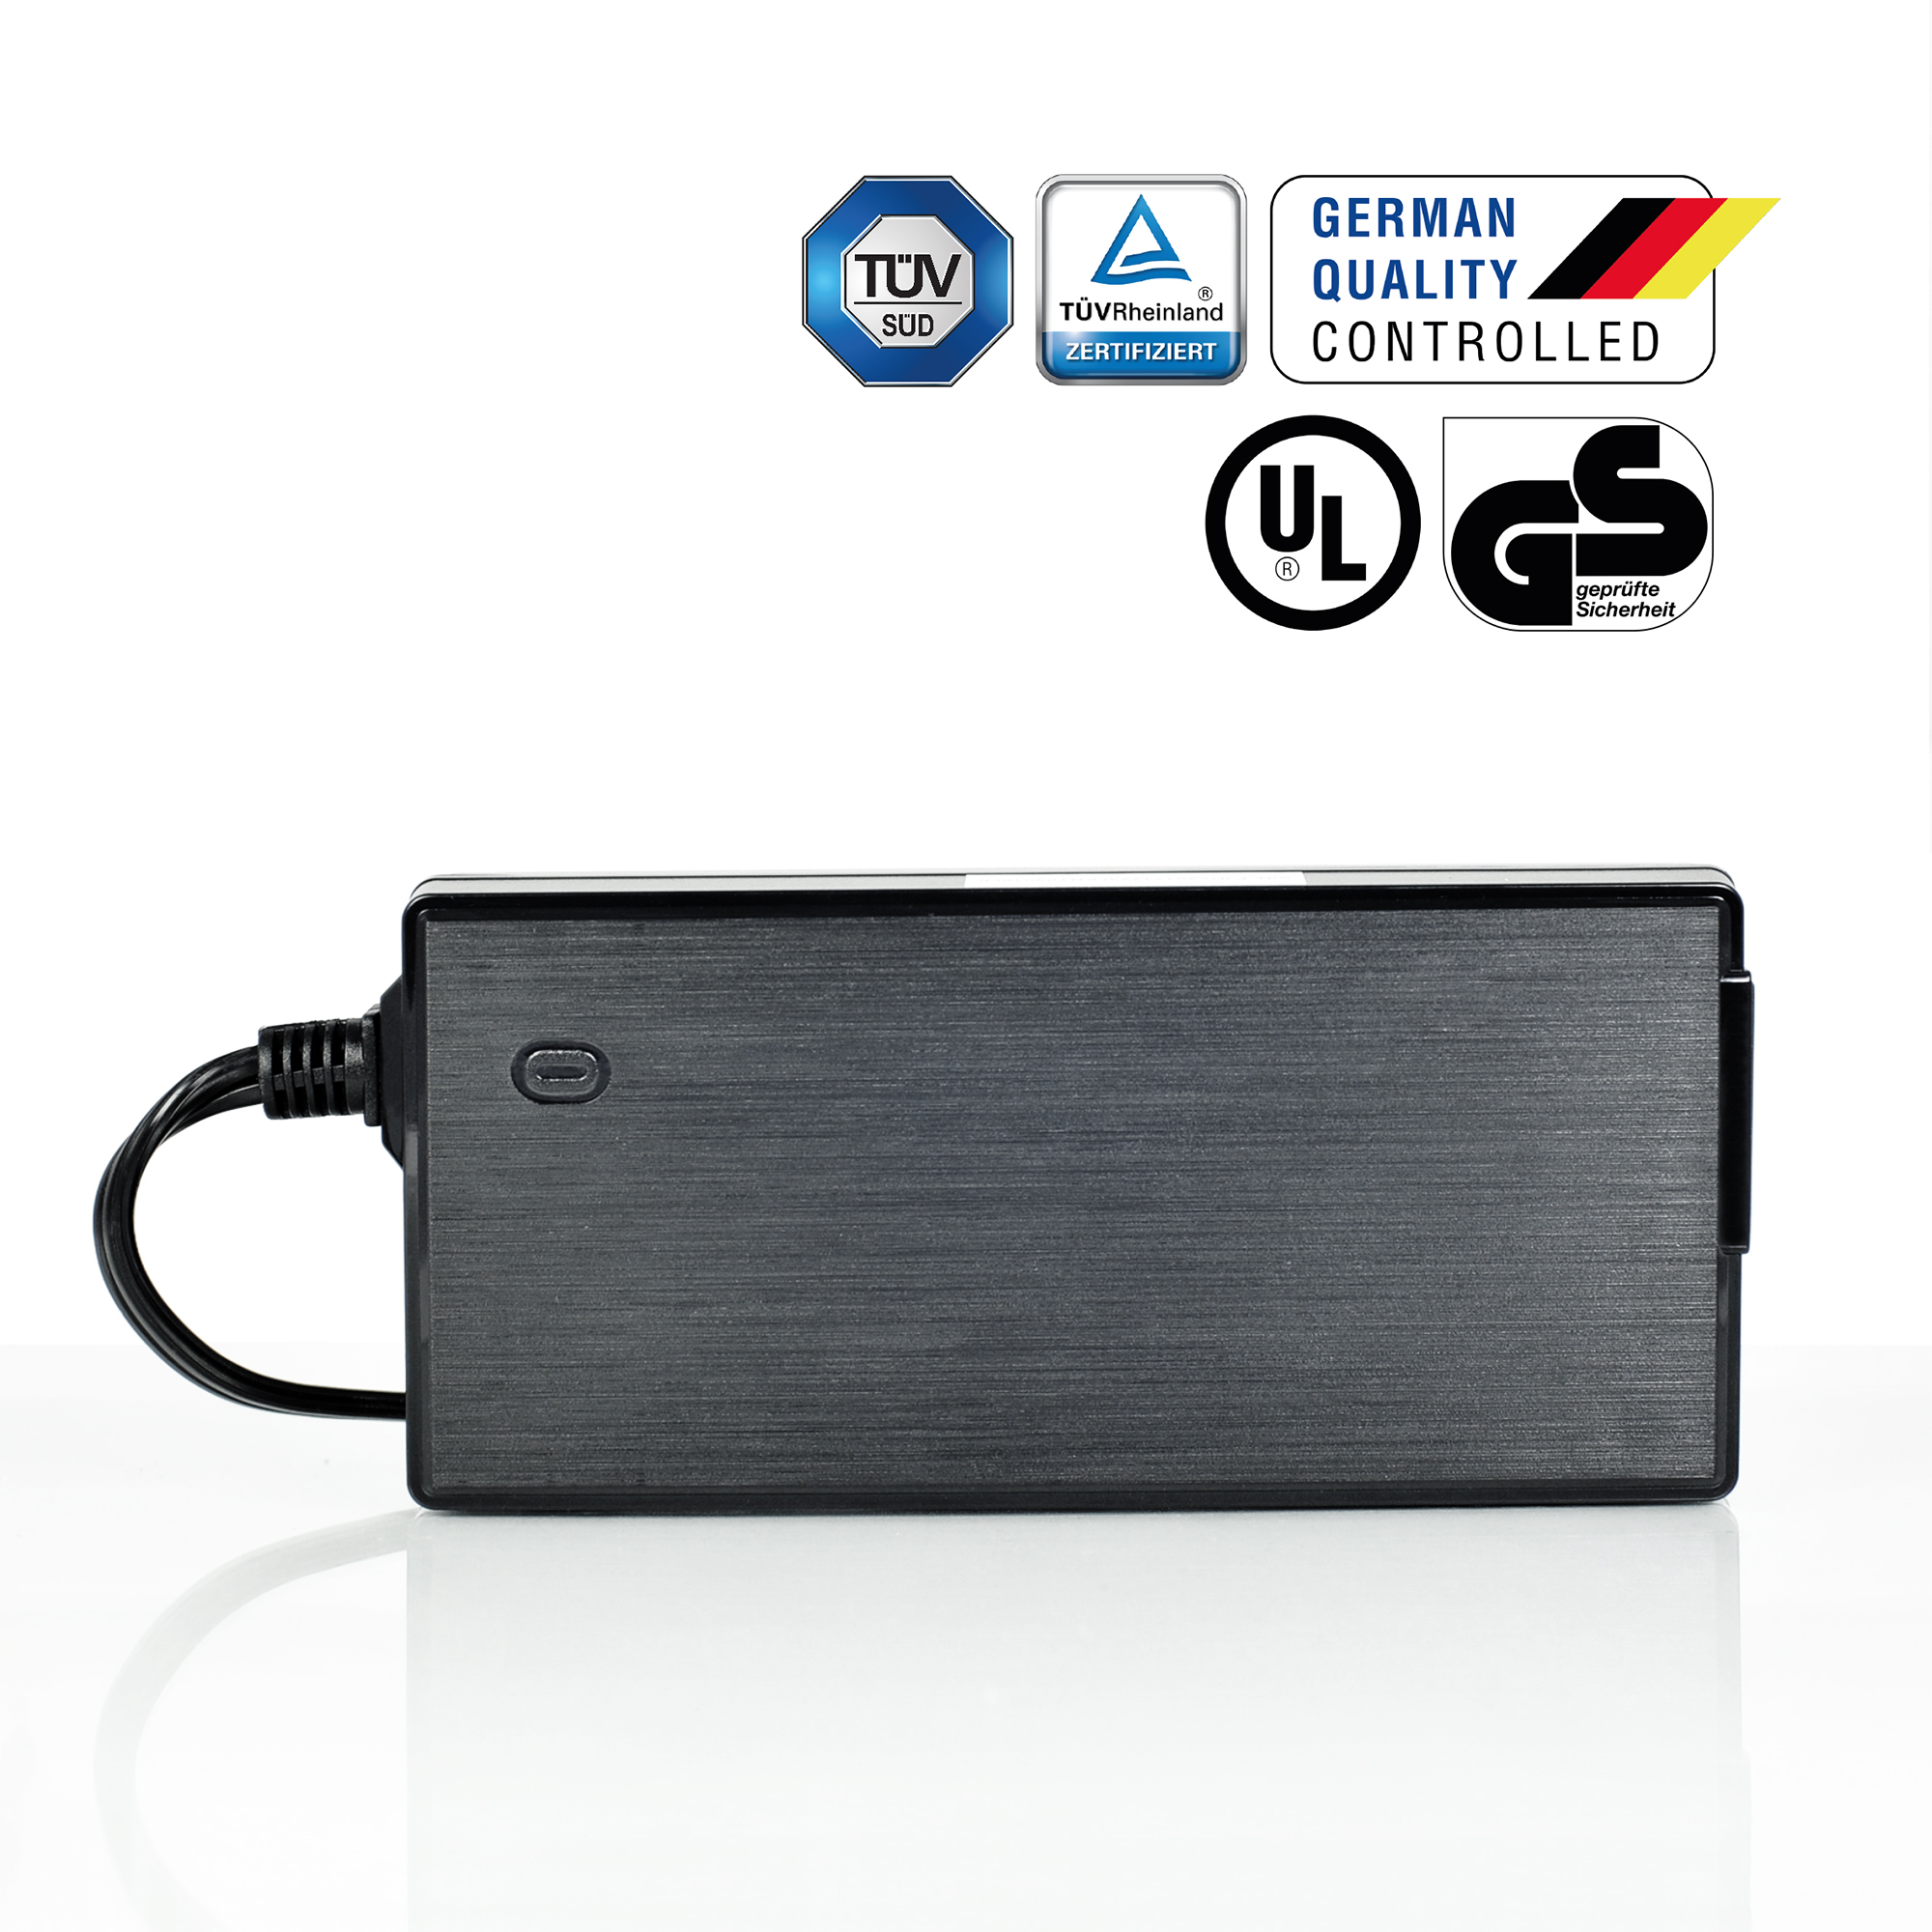 leicke leicke ull 156w power supply 12v 13a german tÜv certified